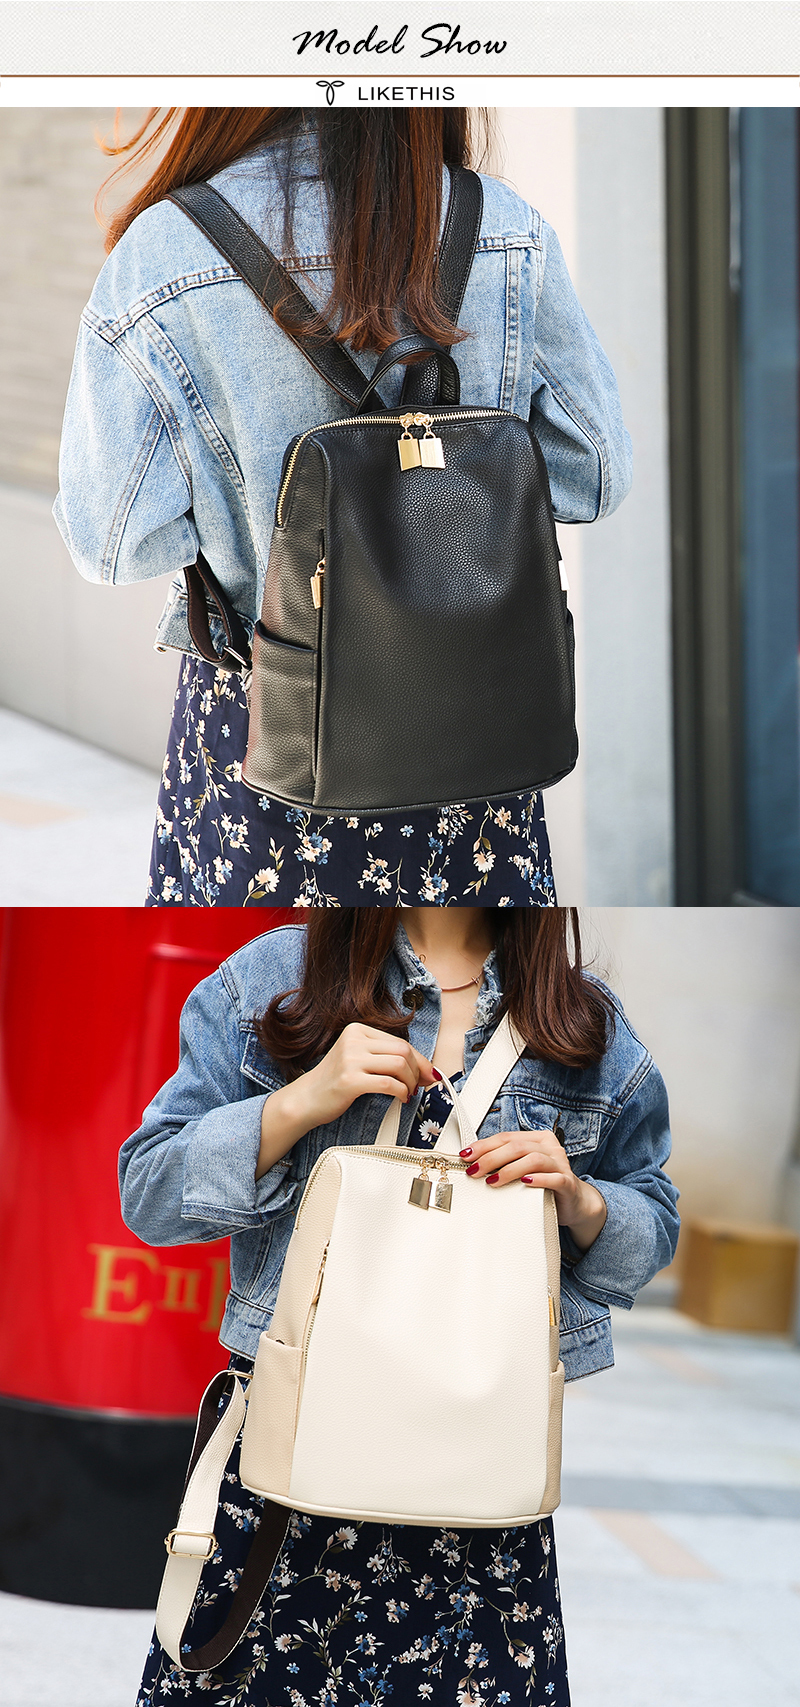 H0cb191da67094cc788d074c33f8574d3L Women Backpack for School Style Leather Bag For College Simple Design Women Casual Daypacks mochila Female Famous Brands168-325